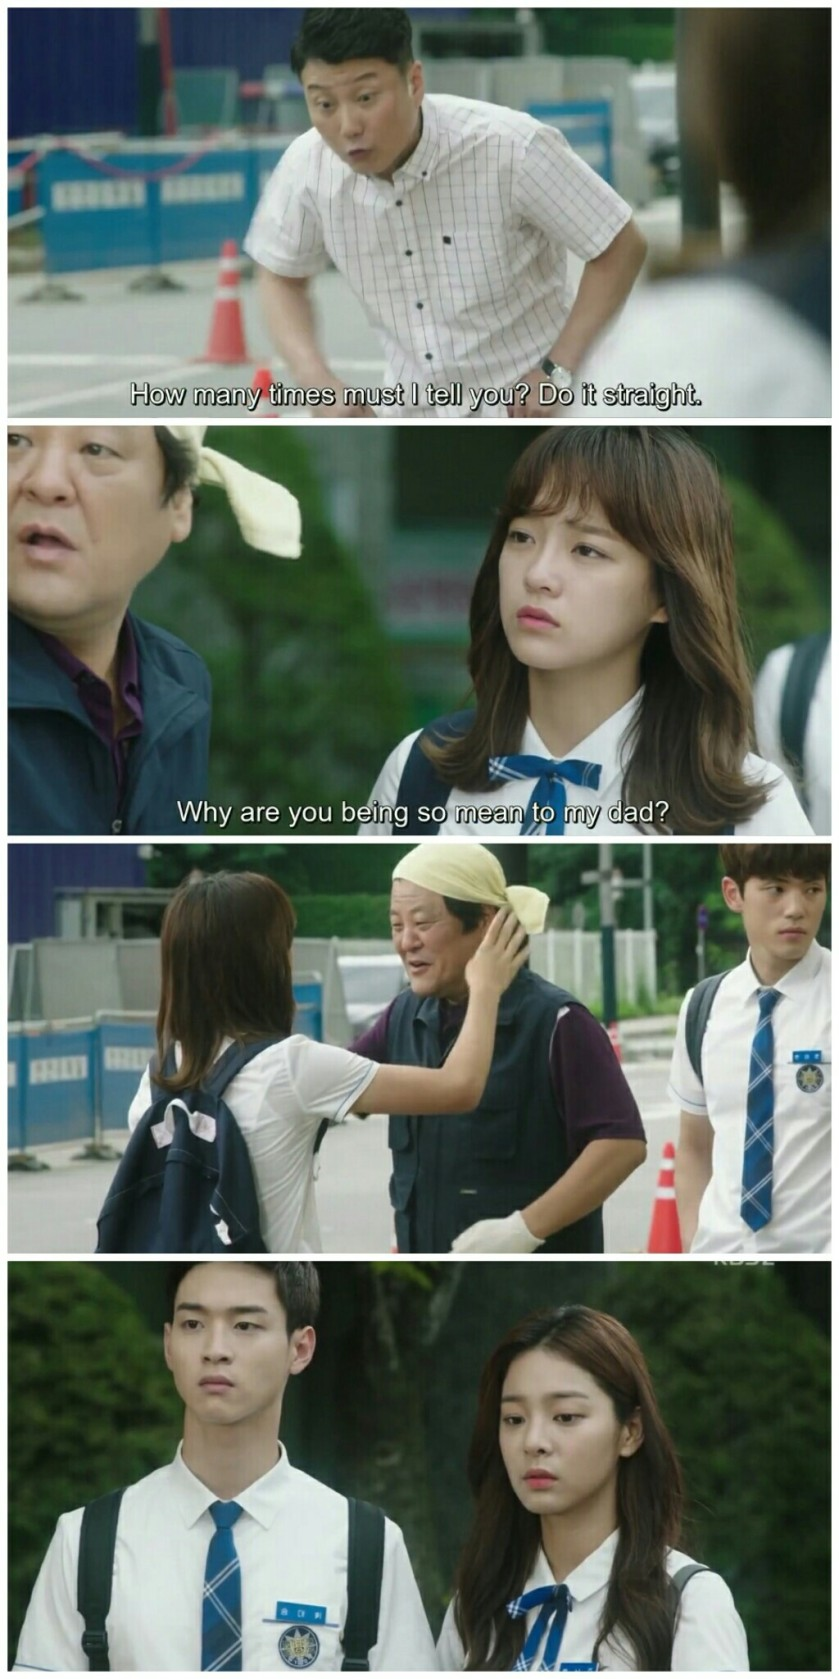 School ep 8 ra eunho father kim sejeong